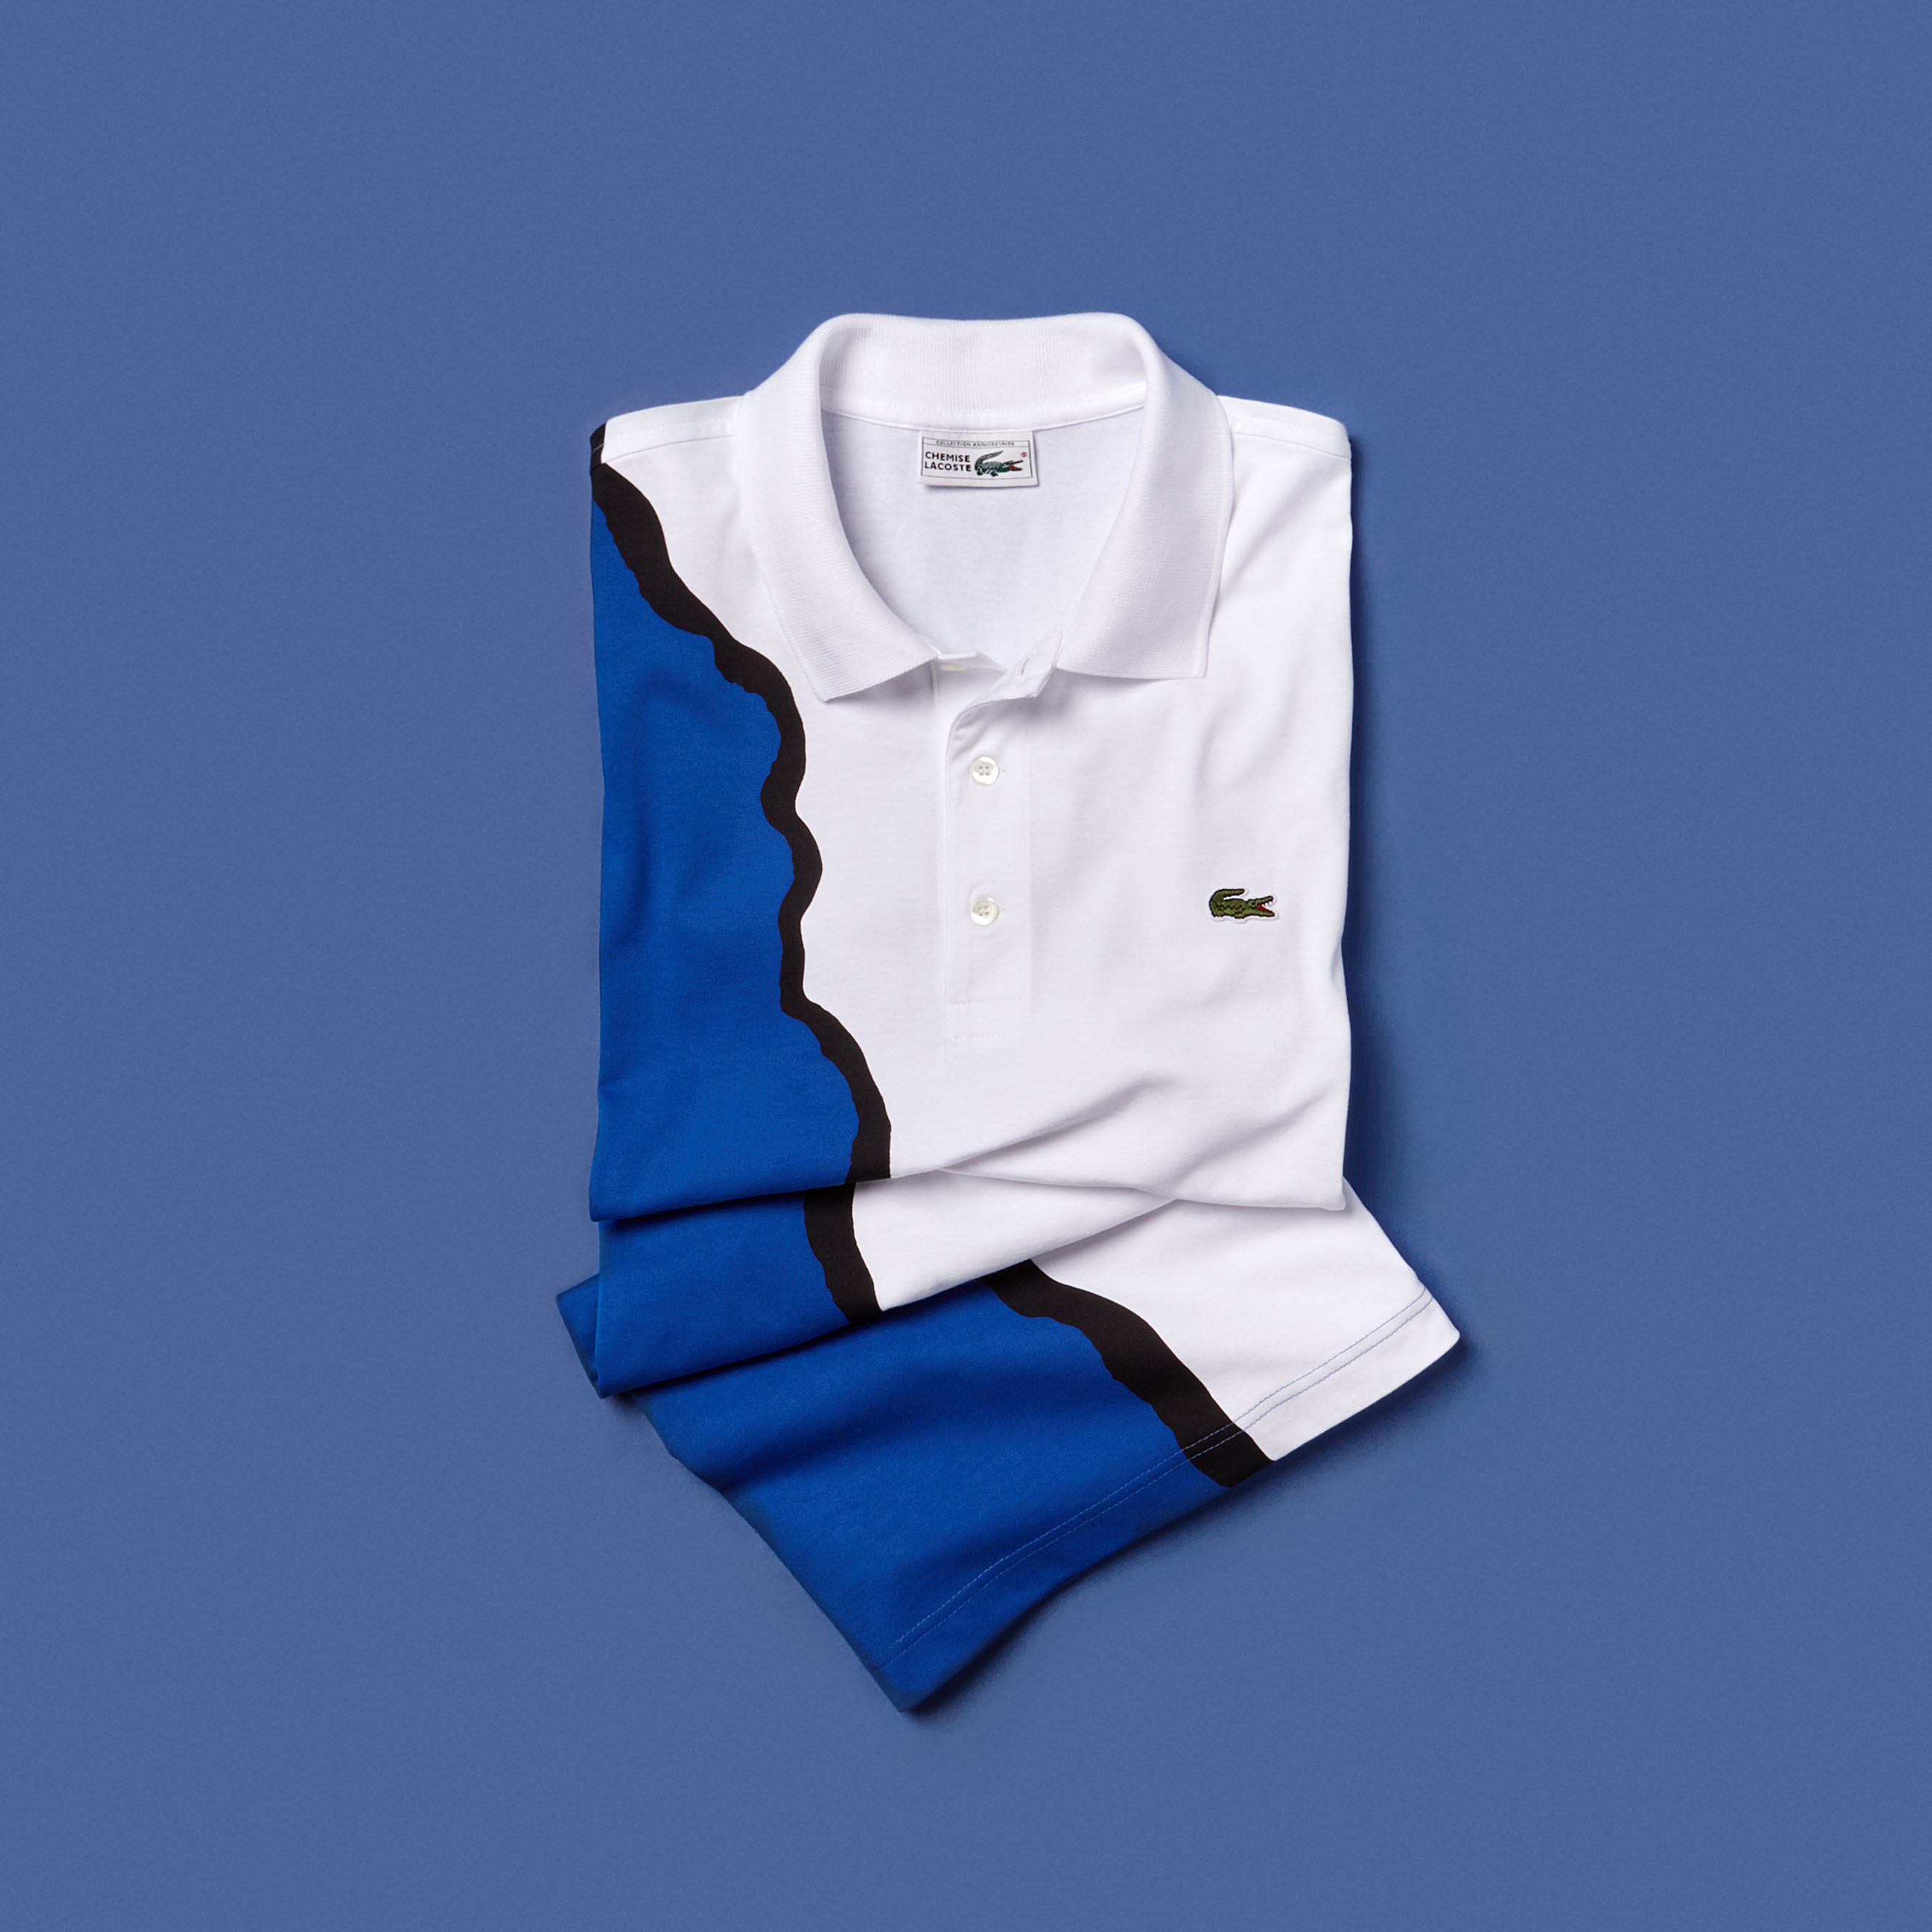 aff905793 mens blue and white polo mens white and black polo